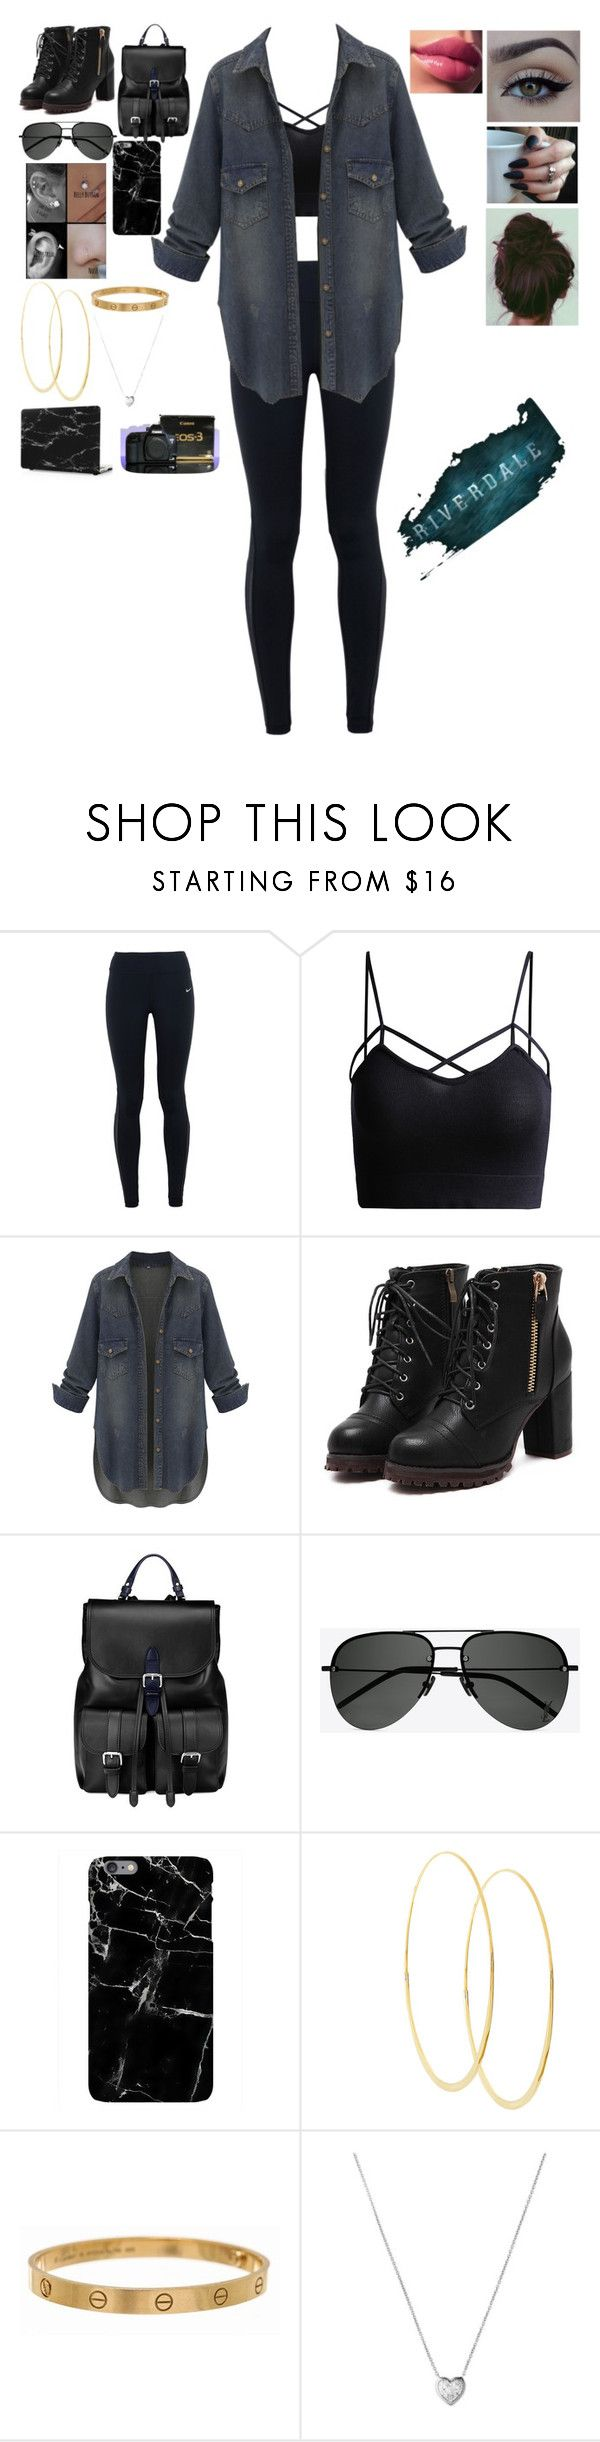 """~Riverdale~ Female Jughead Jones"" by s2a4m ❤ liked on Polyvore featuring NIKE, Aspinal of London, Yves Saint Laurent, Harper & Blake, Lana, Cartier, Links of London, xO Design and Eos"